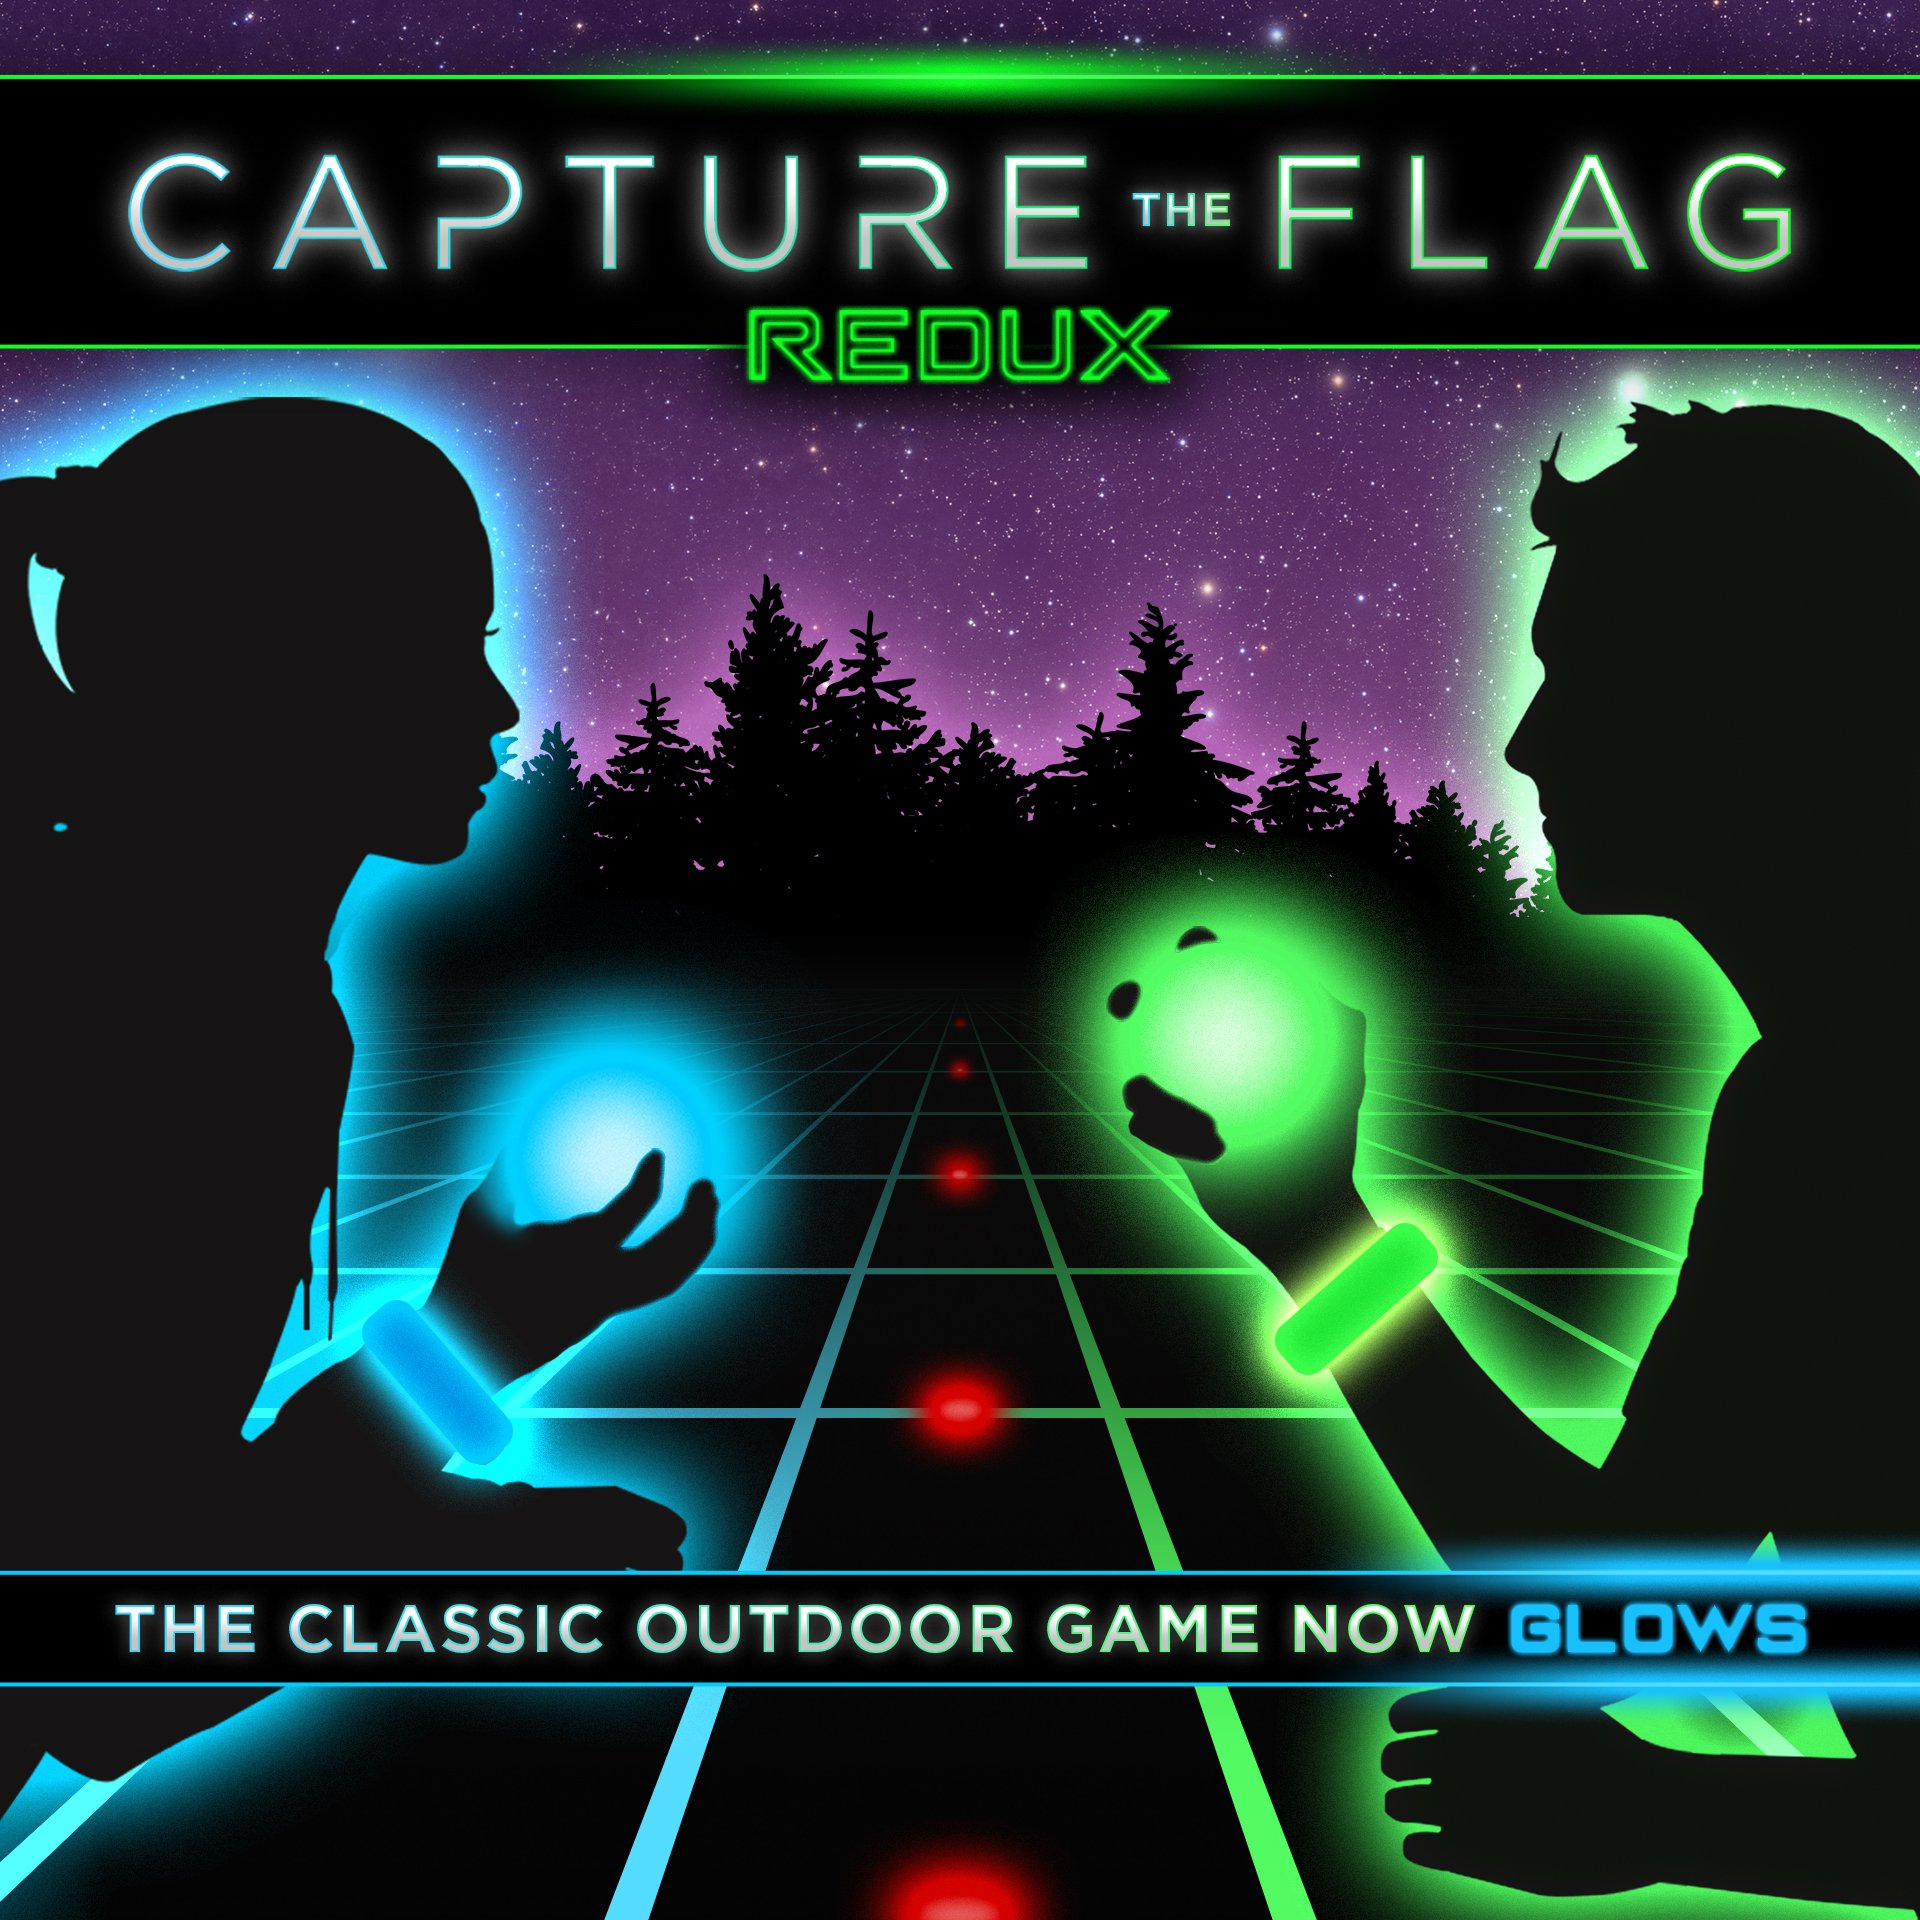 capture the flag redux a nighttime outdoor game for youth groups birthdays and team building get ready for a glow in the dark adventure